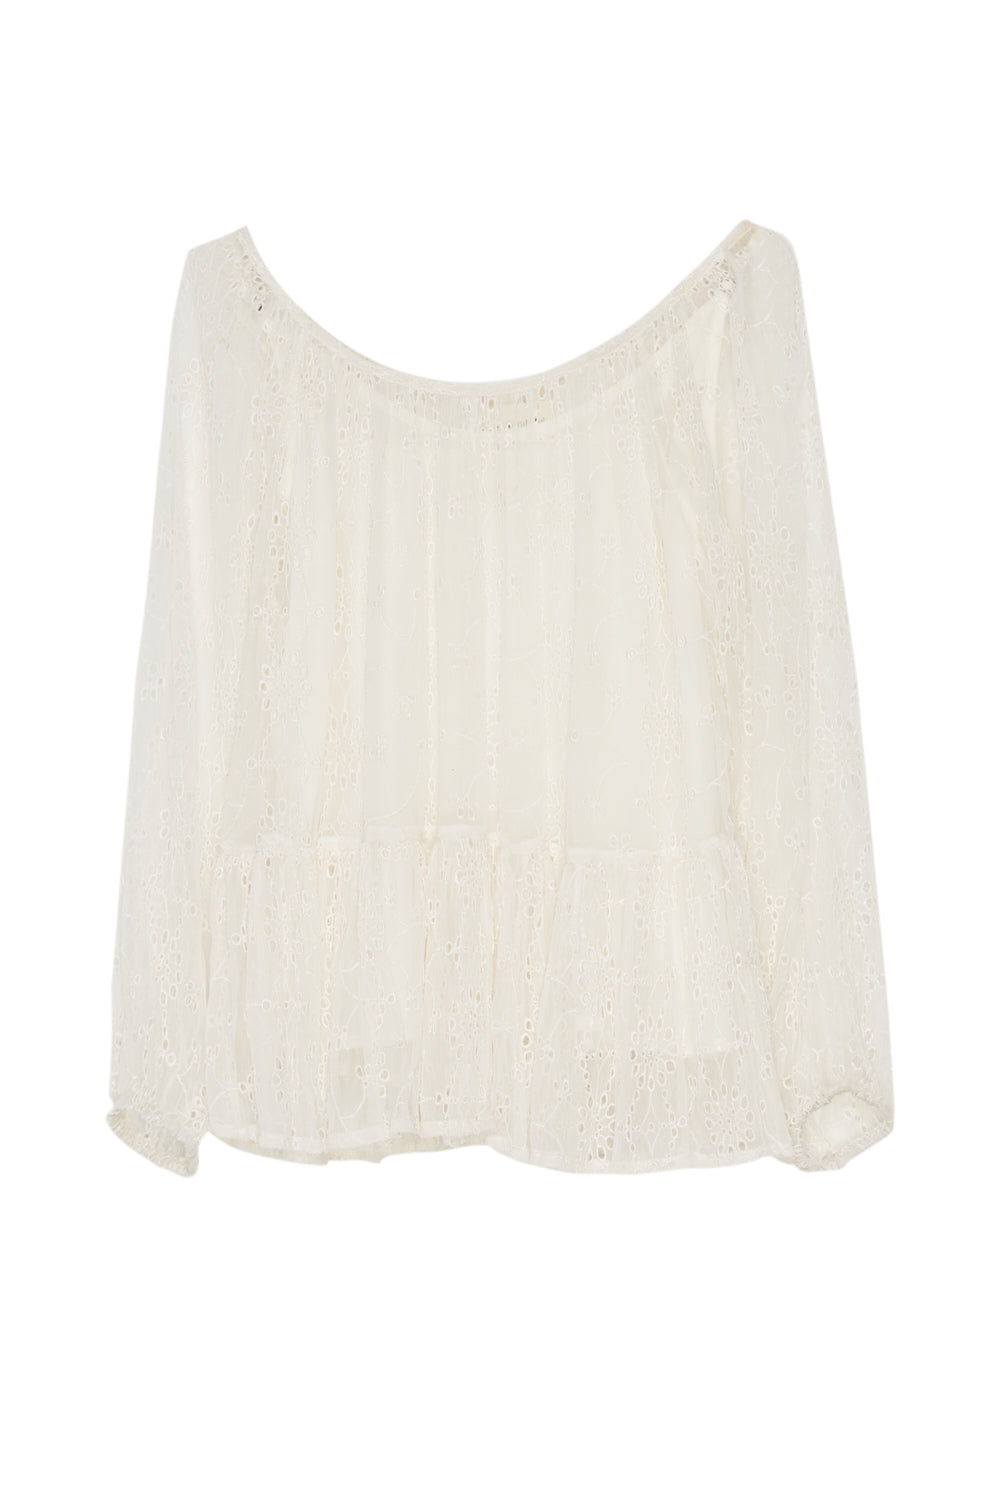 Mila Top - Venise Pearl